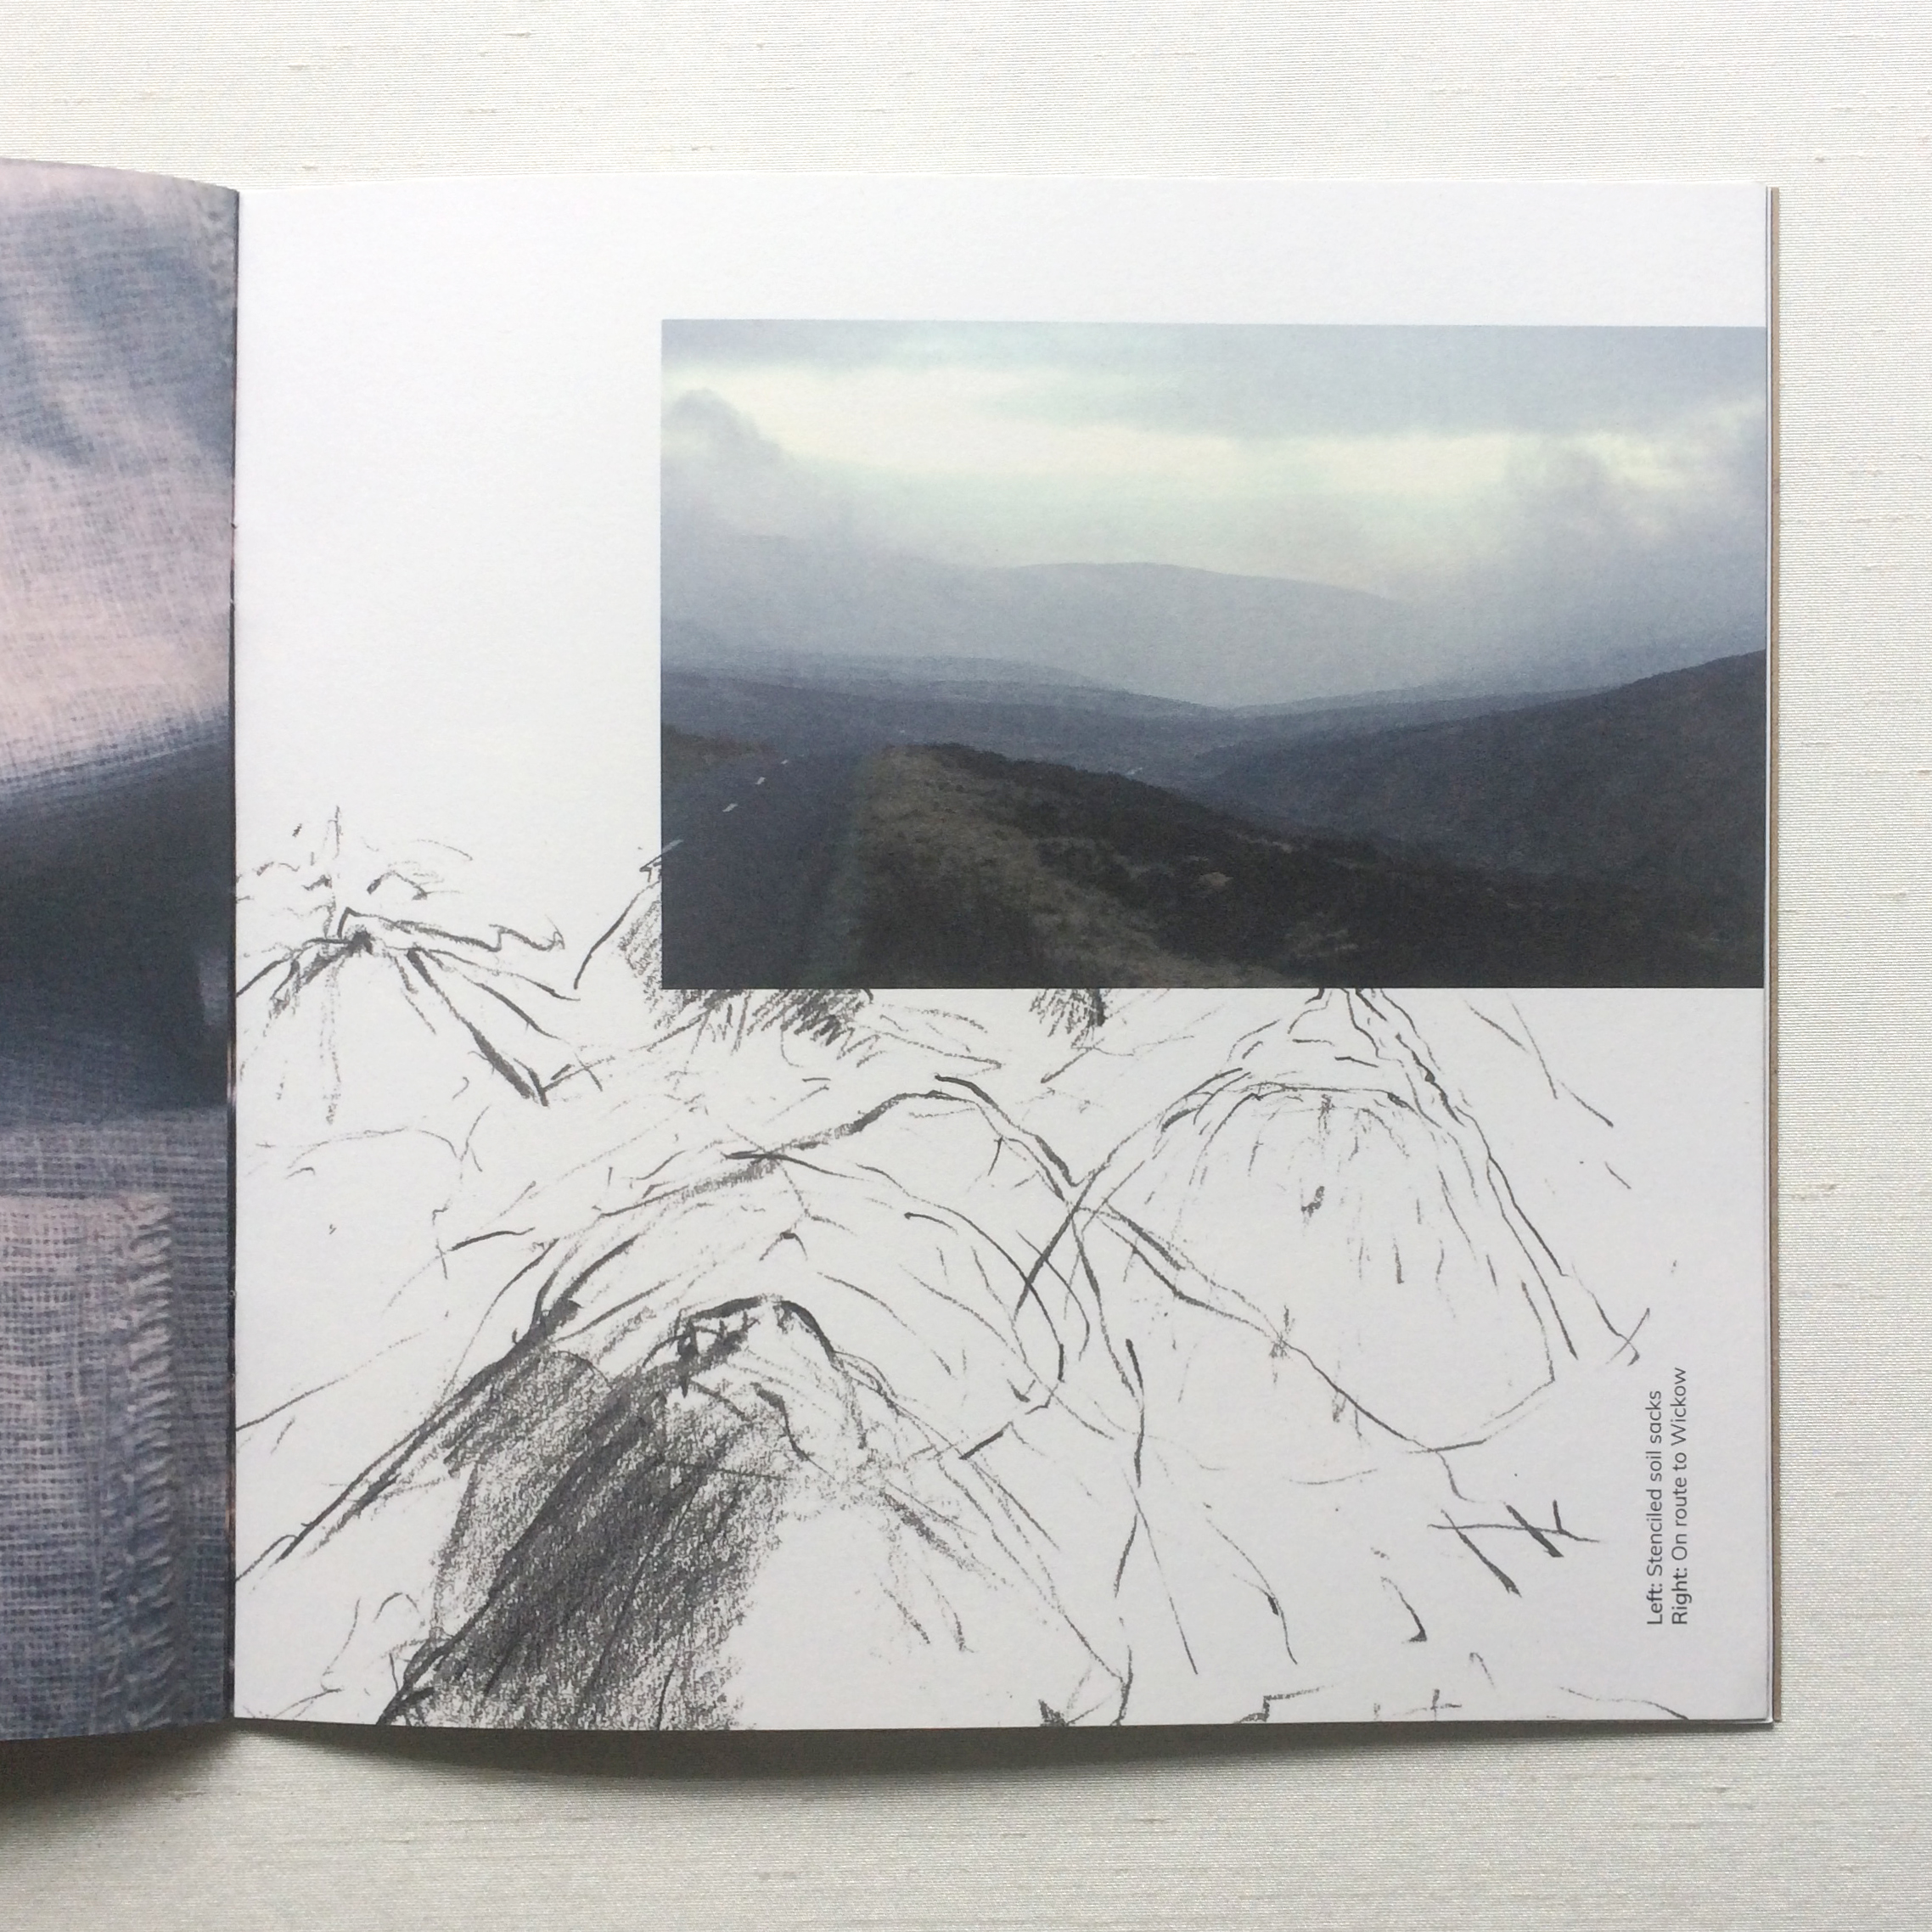 Graphic design artist catalogue - scenic photo beside hand drawing of hills